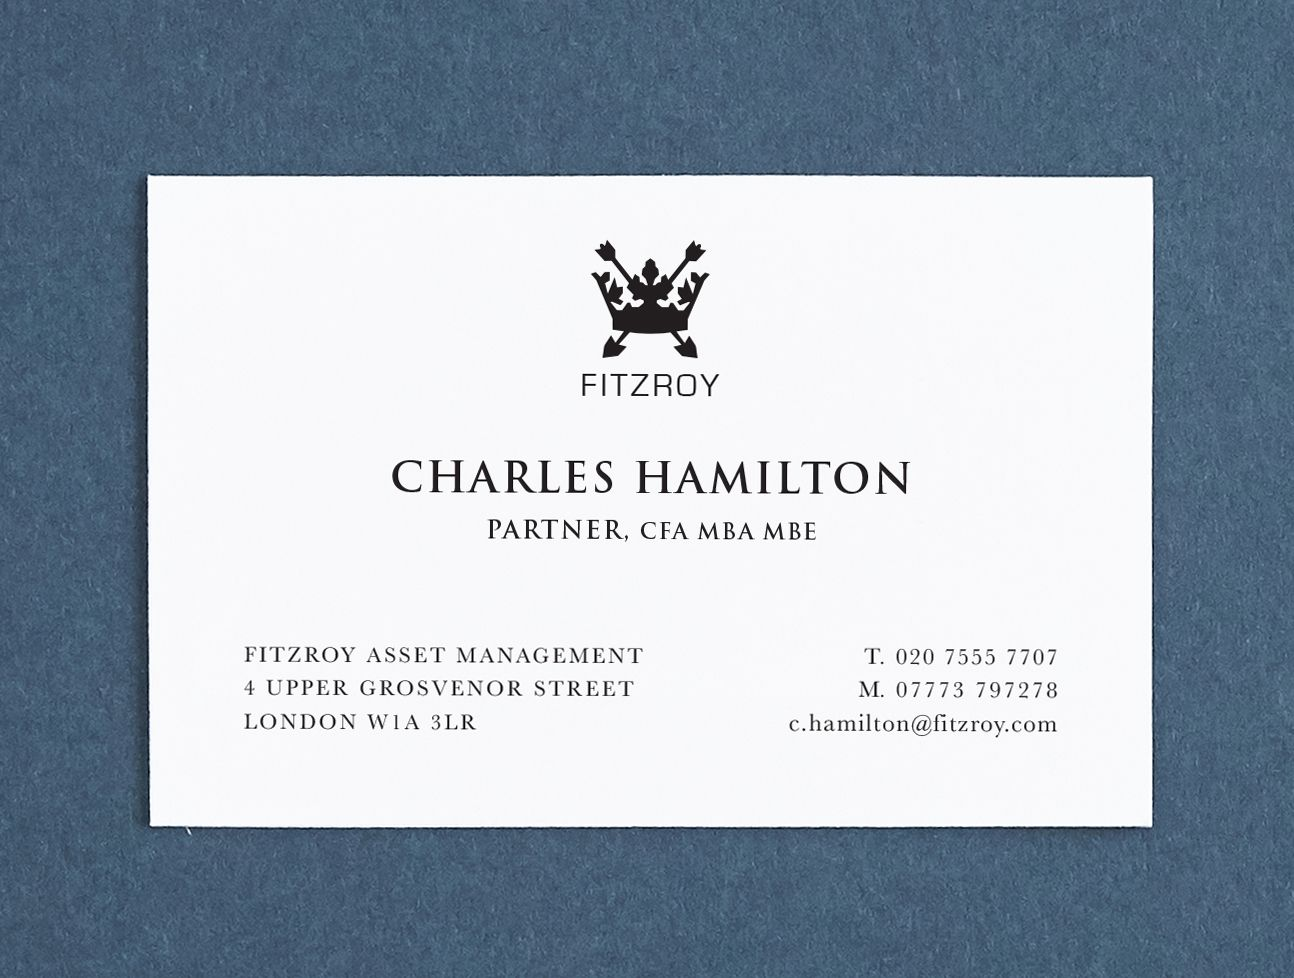 Printed Name Cards Custom Made Business Cards Personalised Professional Calling Cards Business S Business Stationery Make Business Cards Personal Cards